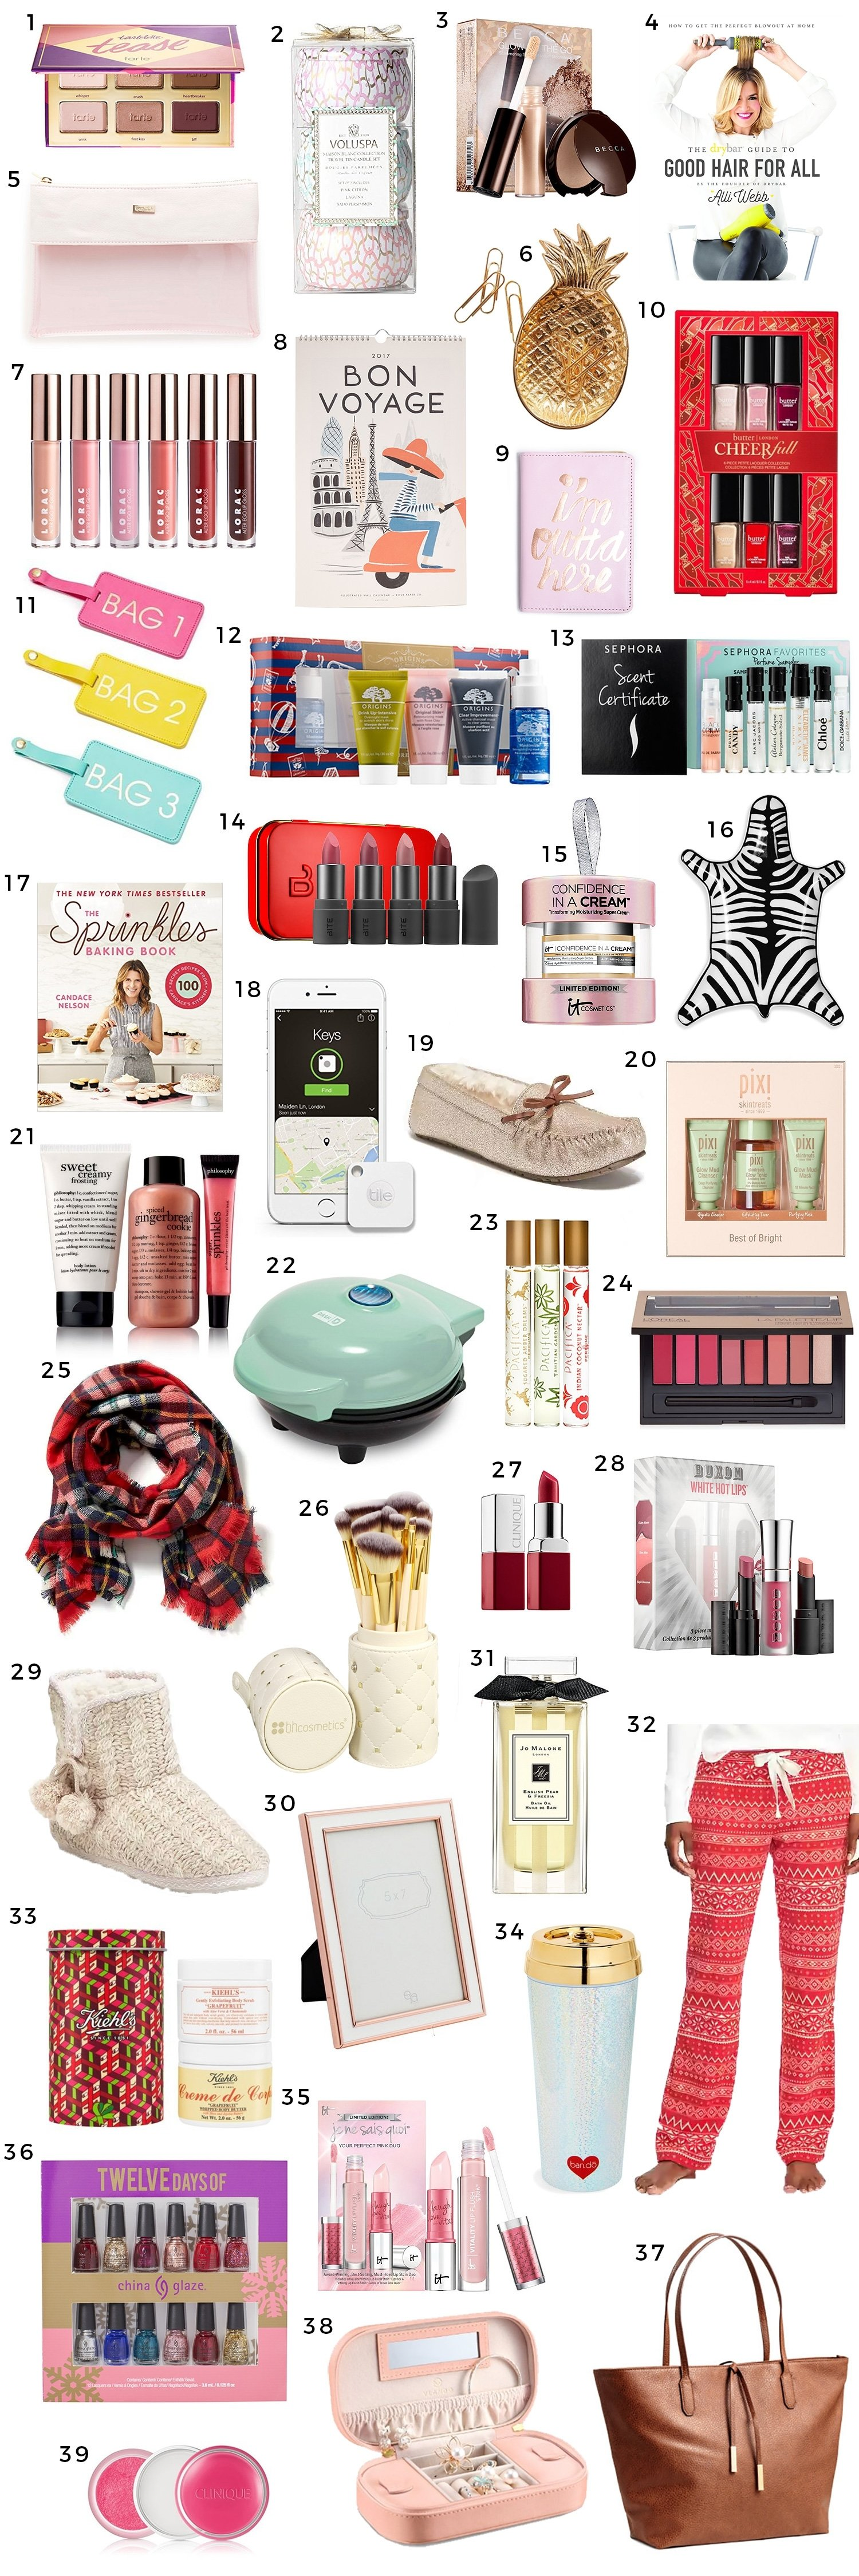 10 Awesome Good Ideas For Christmas Gifts the best christmas gift ideas for women under 25 ashley brooke 11 2020